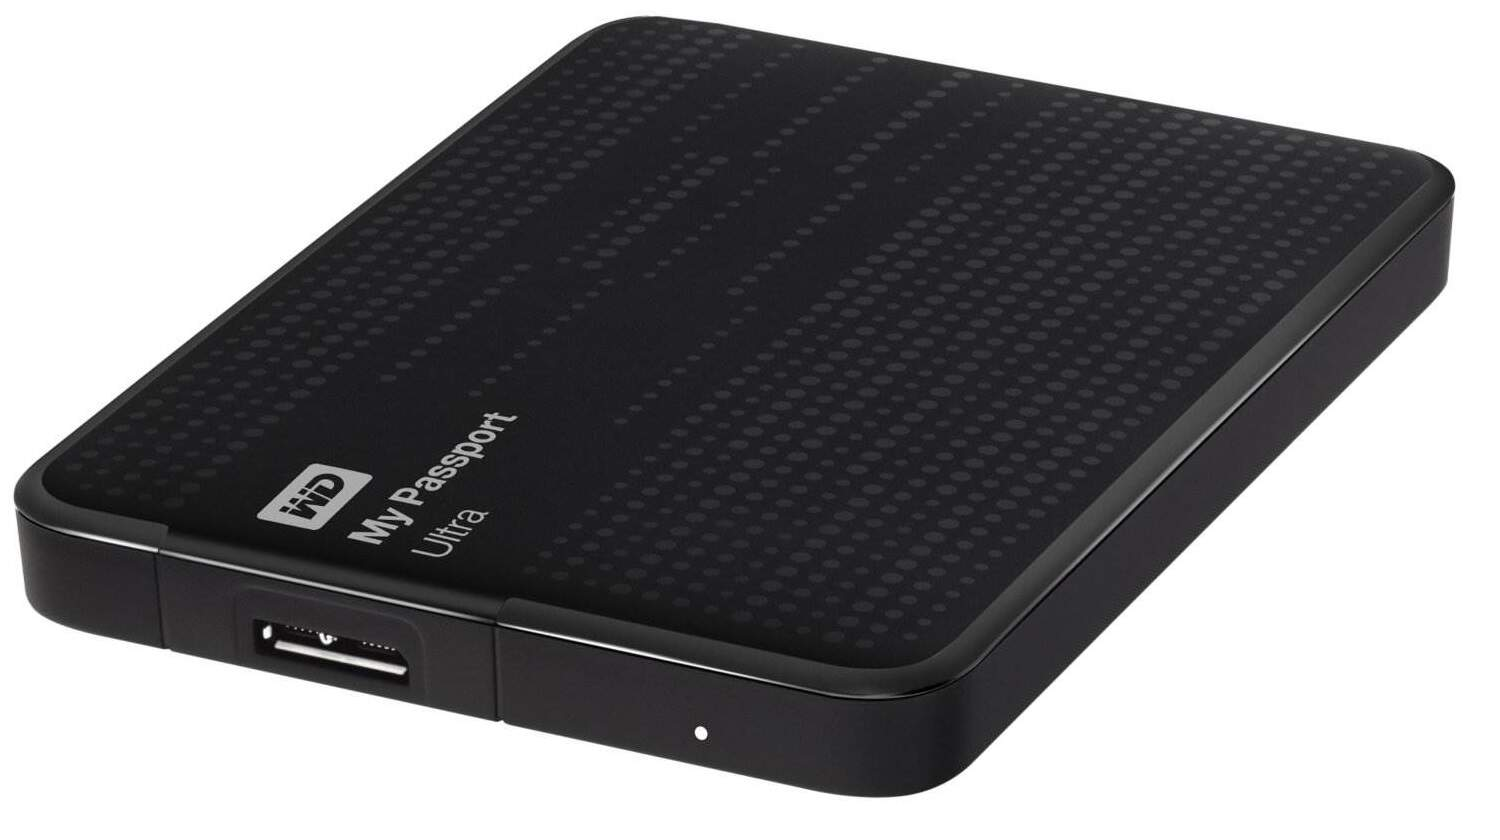 HD Externo Portátil 1TB Western Digital My Passport Ultra USB 3.0